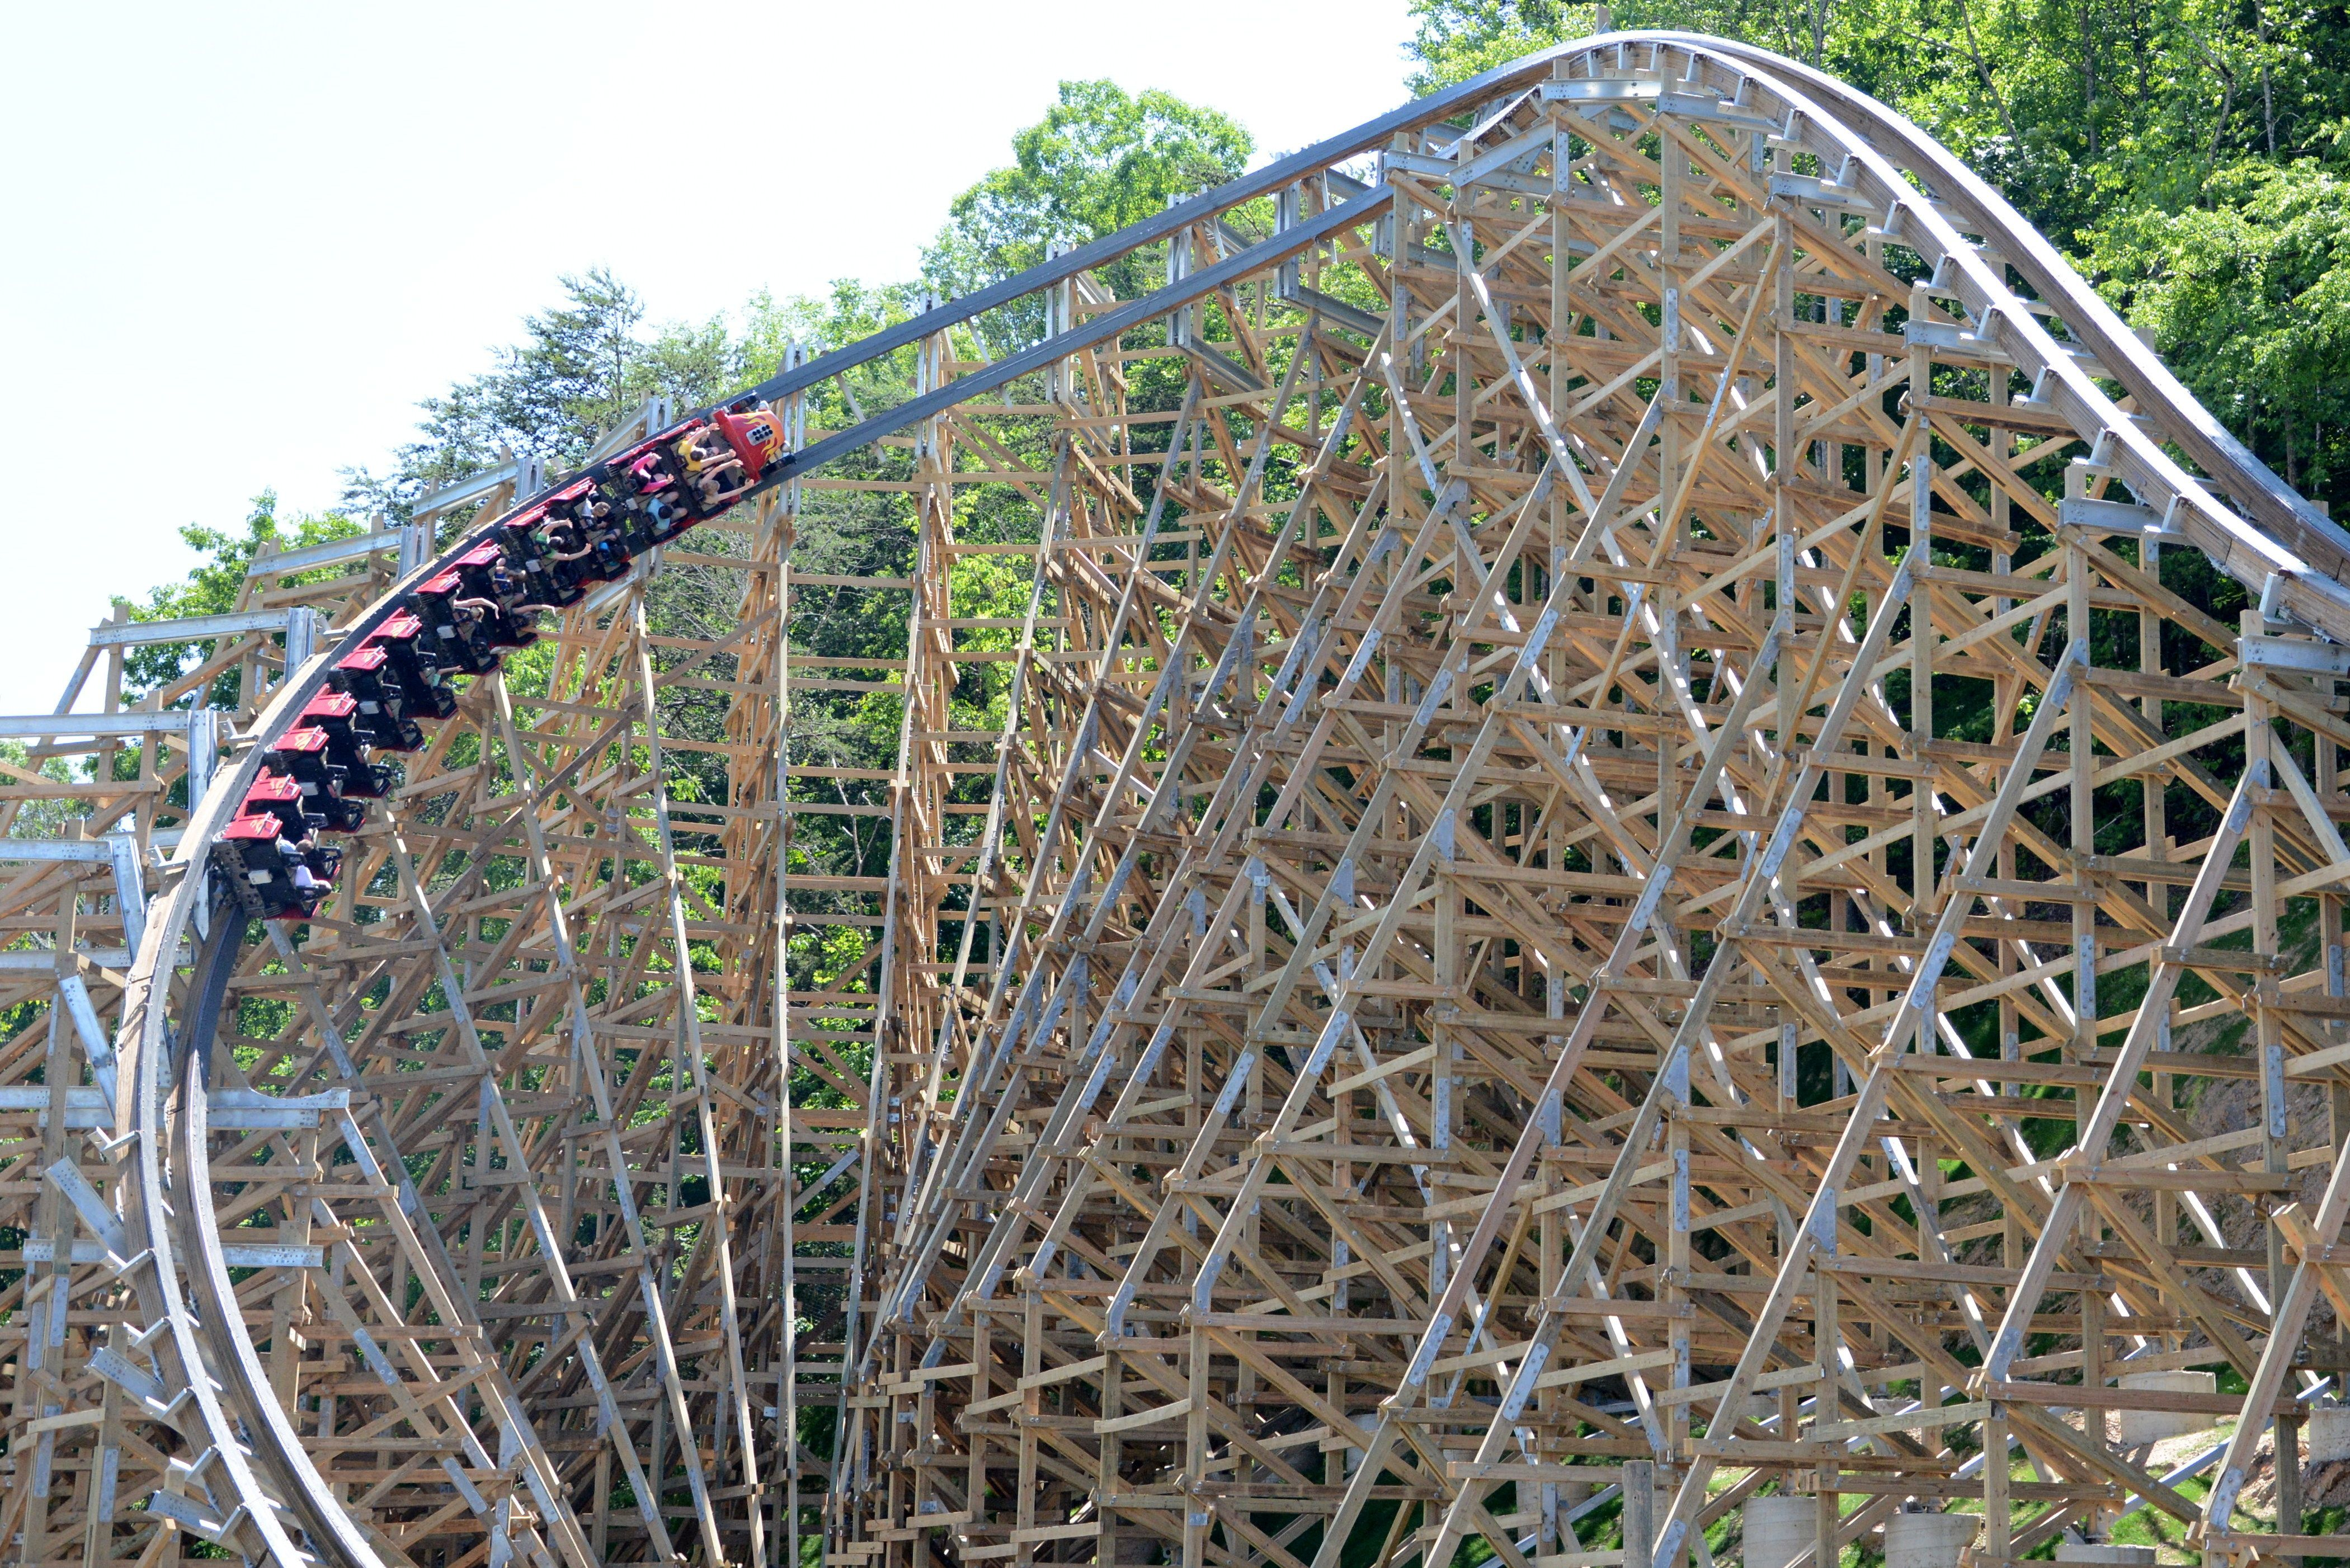 Insane Turn On Lightning Rod At Dollywood Tennessee Wooden